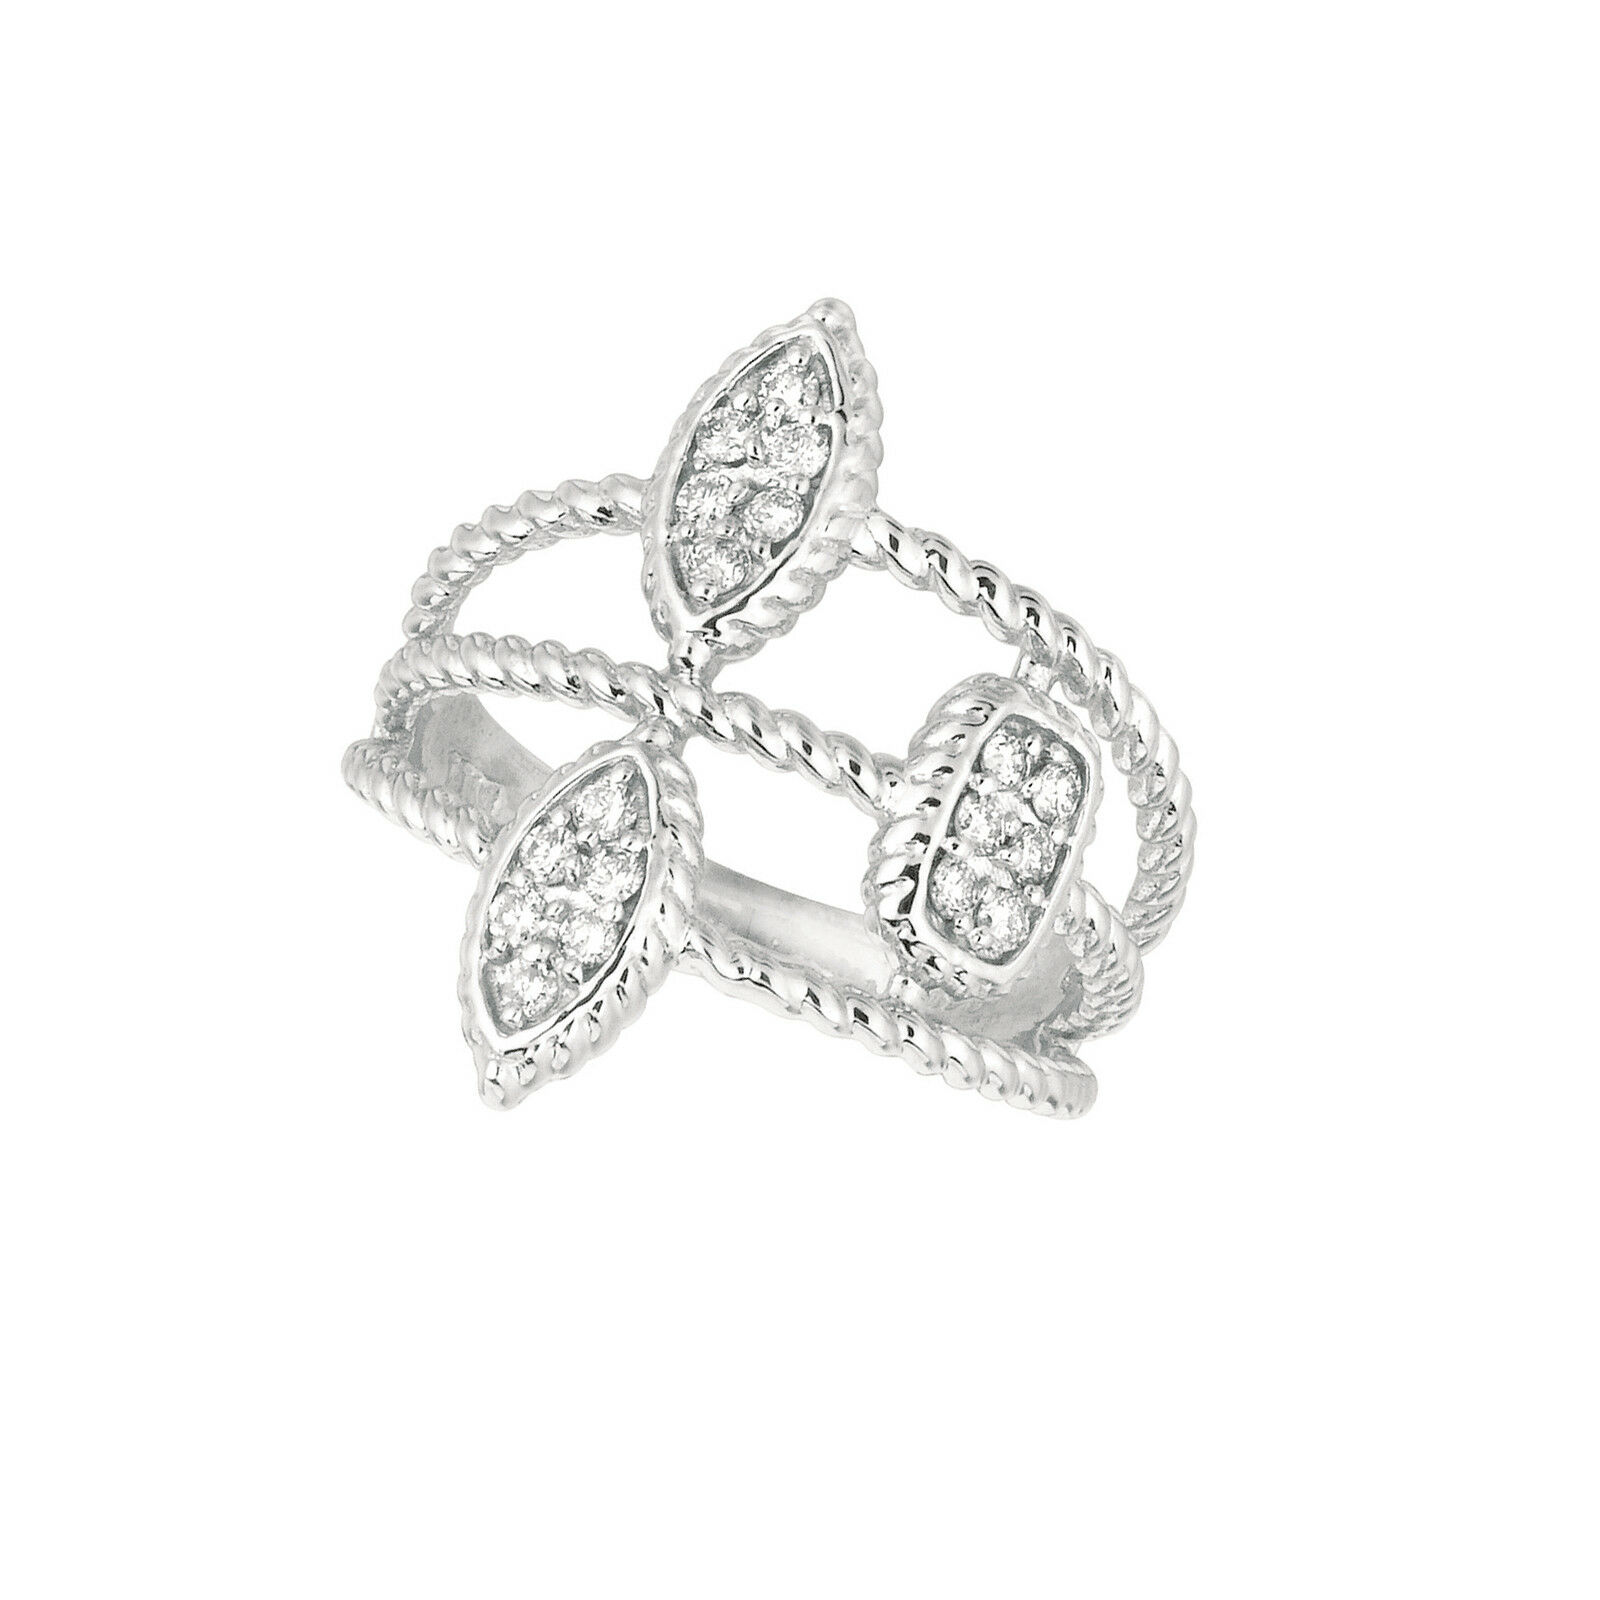 Fine Rings Fine Jewelry New 14k White Gold 9mm Pearl And Pave Diamond Ring 0.23 Ct